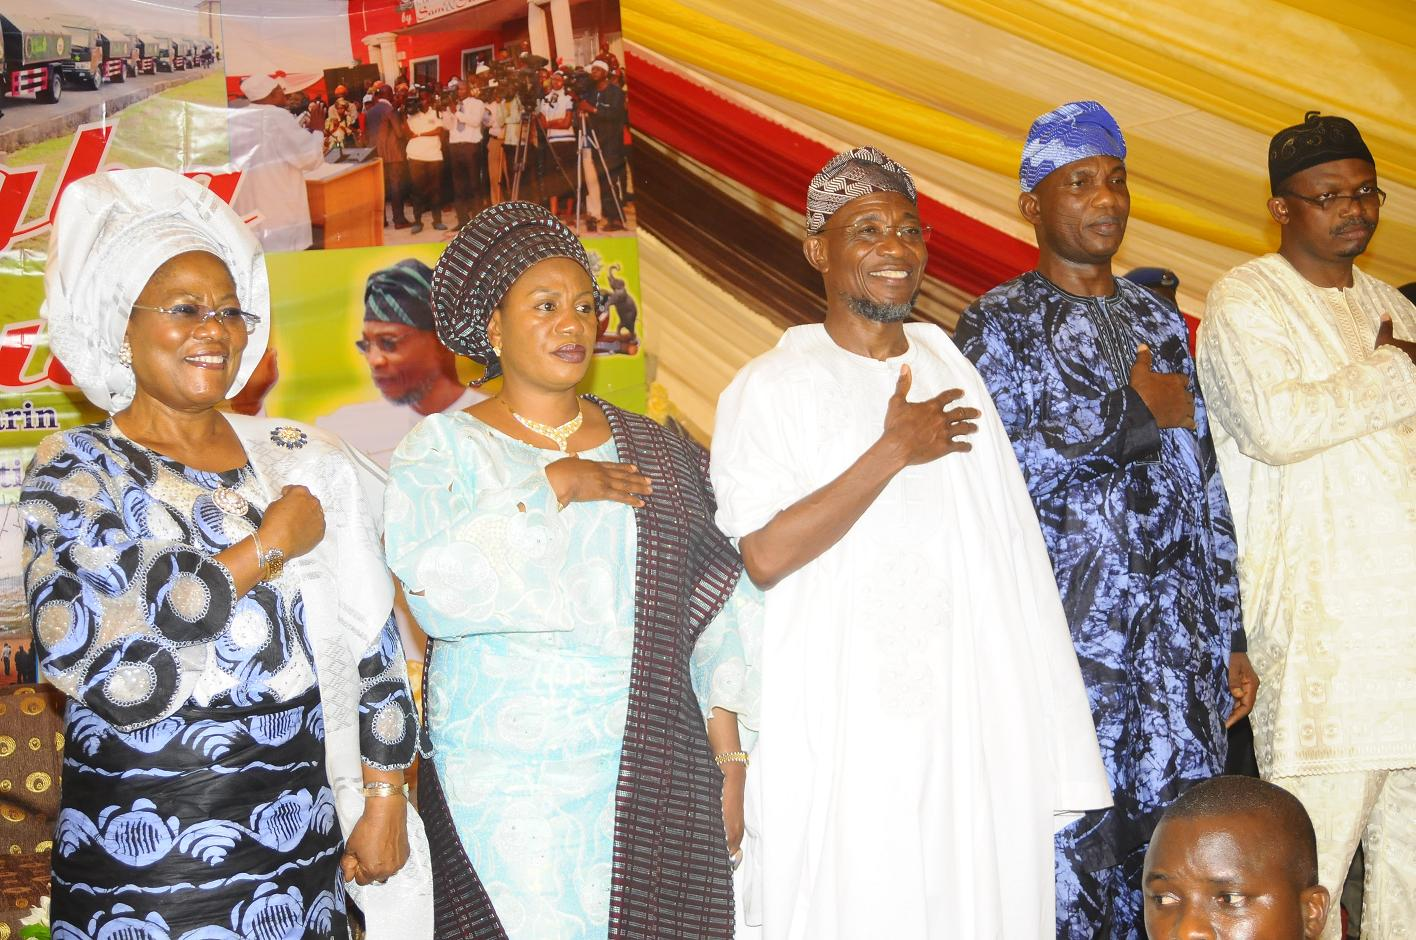 """From left, Deputy Governor State of Osun, Mrs Titi Laoye-Tomori; Wife of the Governor, Alhaja Sherifat Aregbesola; Governor, Ogbeni Rauf Aregbesola; Secretary to the State Government of Osun, Alhaji Moshood Adeoti and Member House of Representatives representing Atakunmosa East/West and Ilesa East/West, Honourable Ajibola Famurewa,  after words of support for Aregbesola Second Term in office by people of Ijeshaland,  during the 6th edition of an interactive programme tagged, """"Gban-gba Dekun"""" in Ijesha South Federal Constituency consisting of Ilesa West, Ilesa East, Atakumosa East and Atakumosa West Local Governments at Ilesa High School, Ilesa, State of Osun last week"""